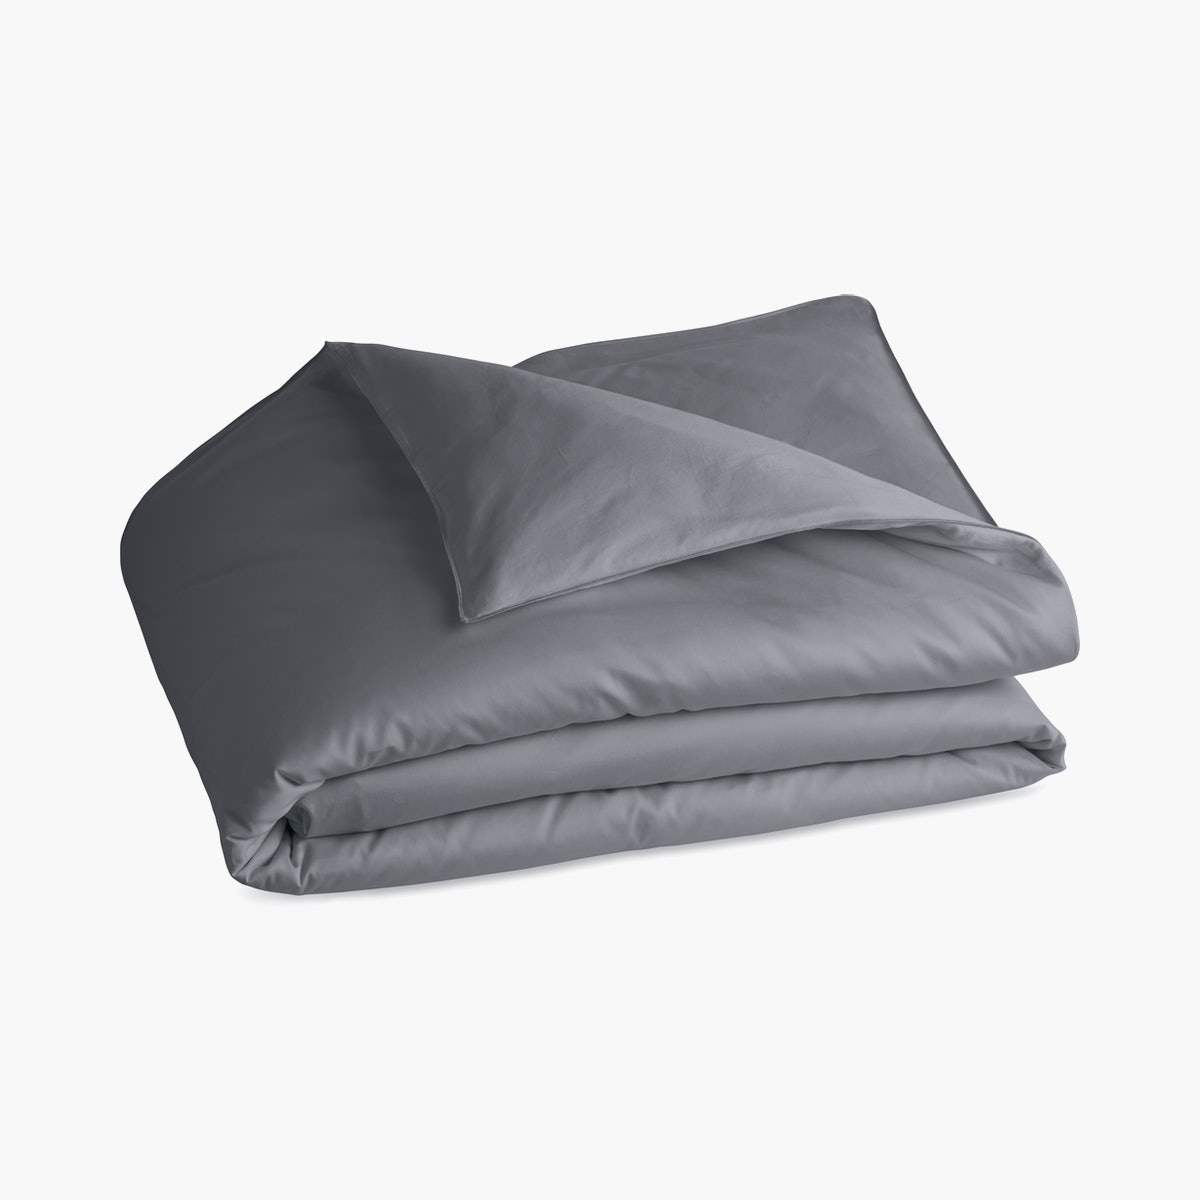 DWR Duvet Cover - Sateen